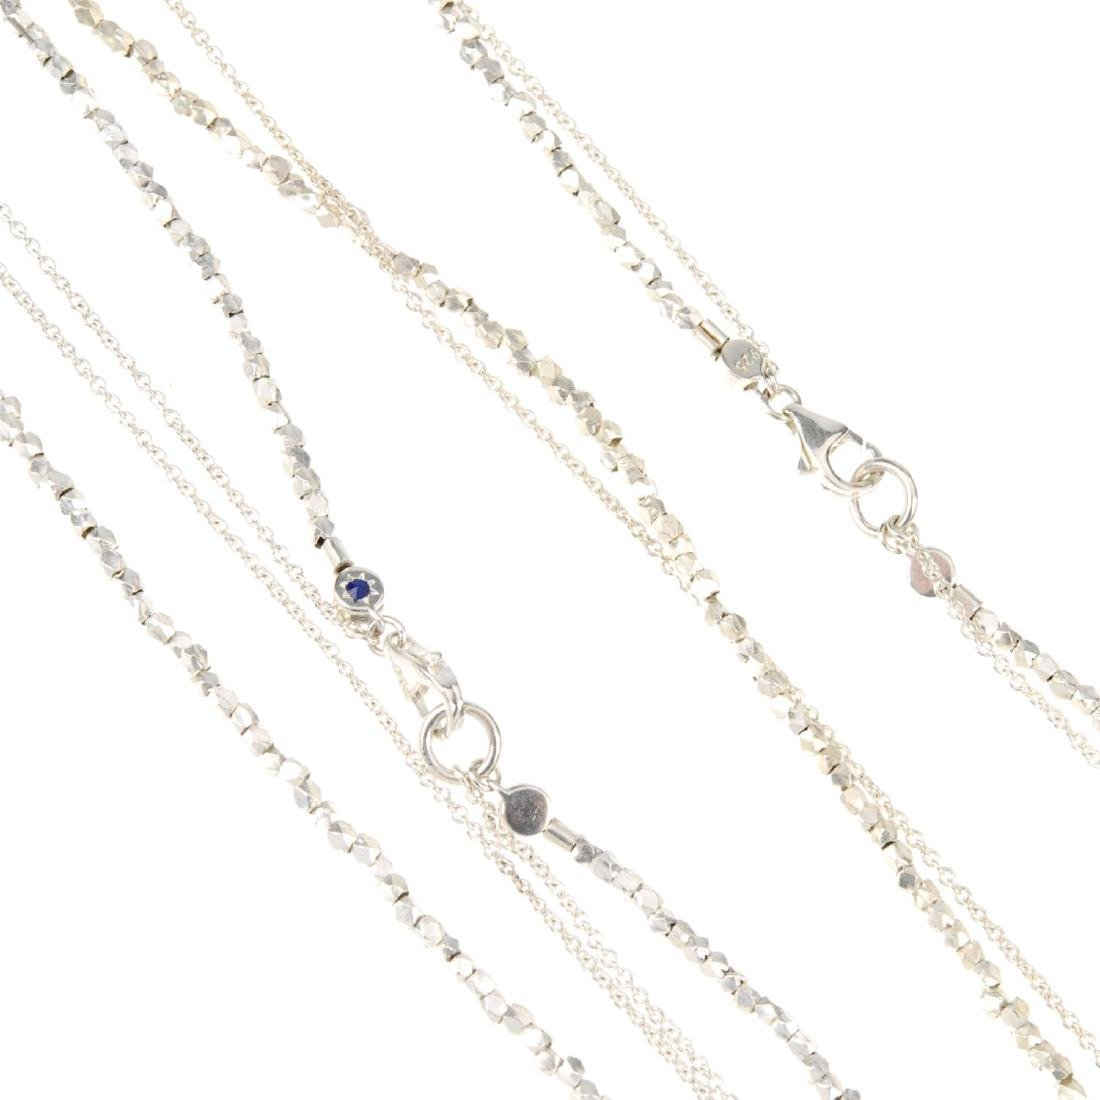 ASTLEY CLARKE - three two-row bracelets and two two-row